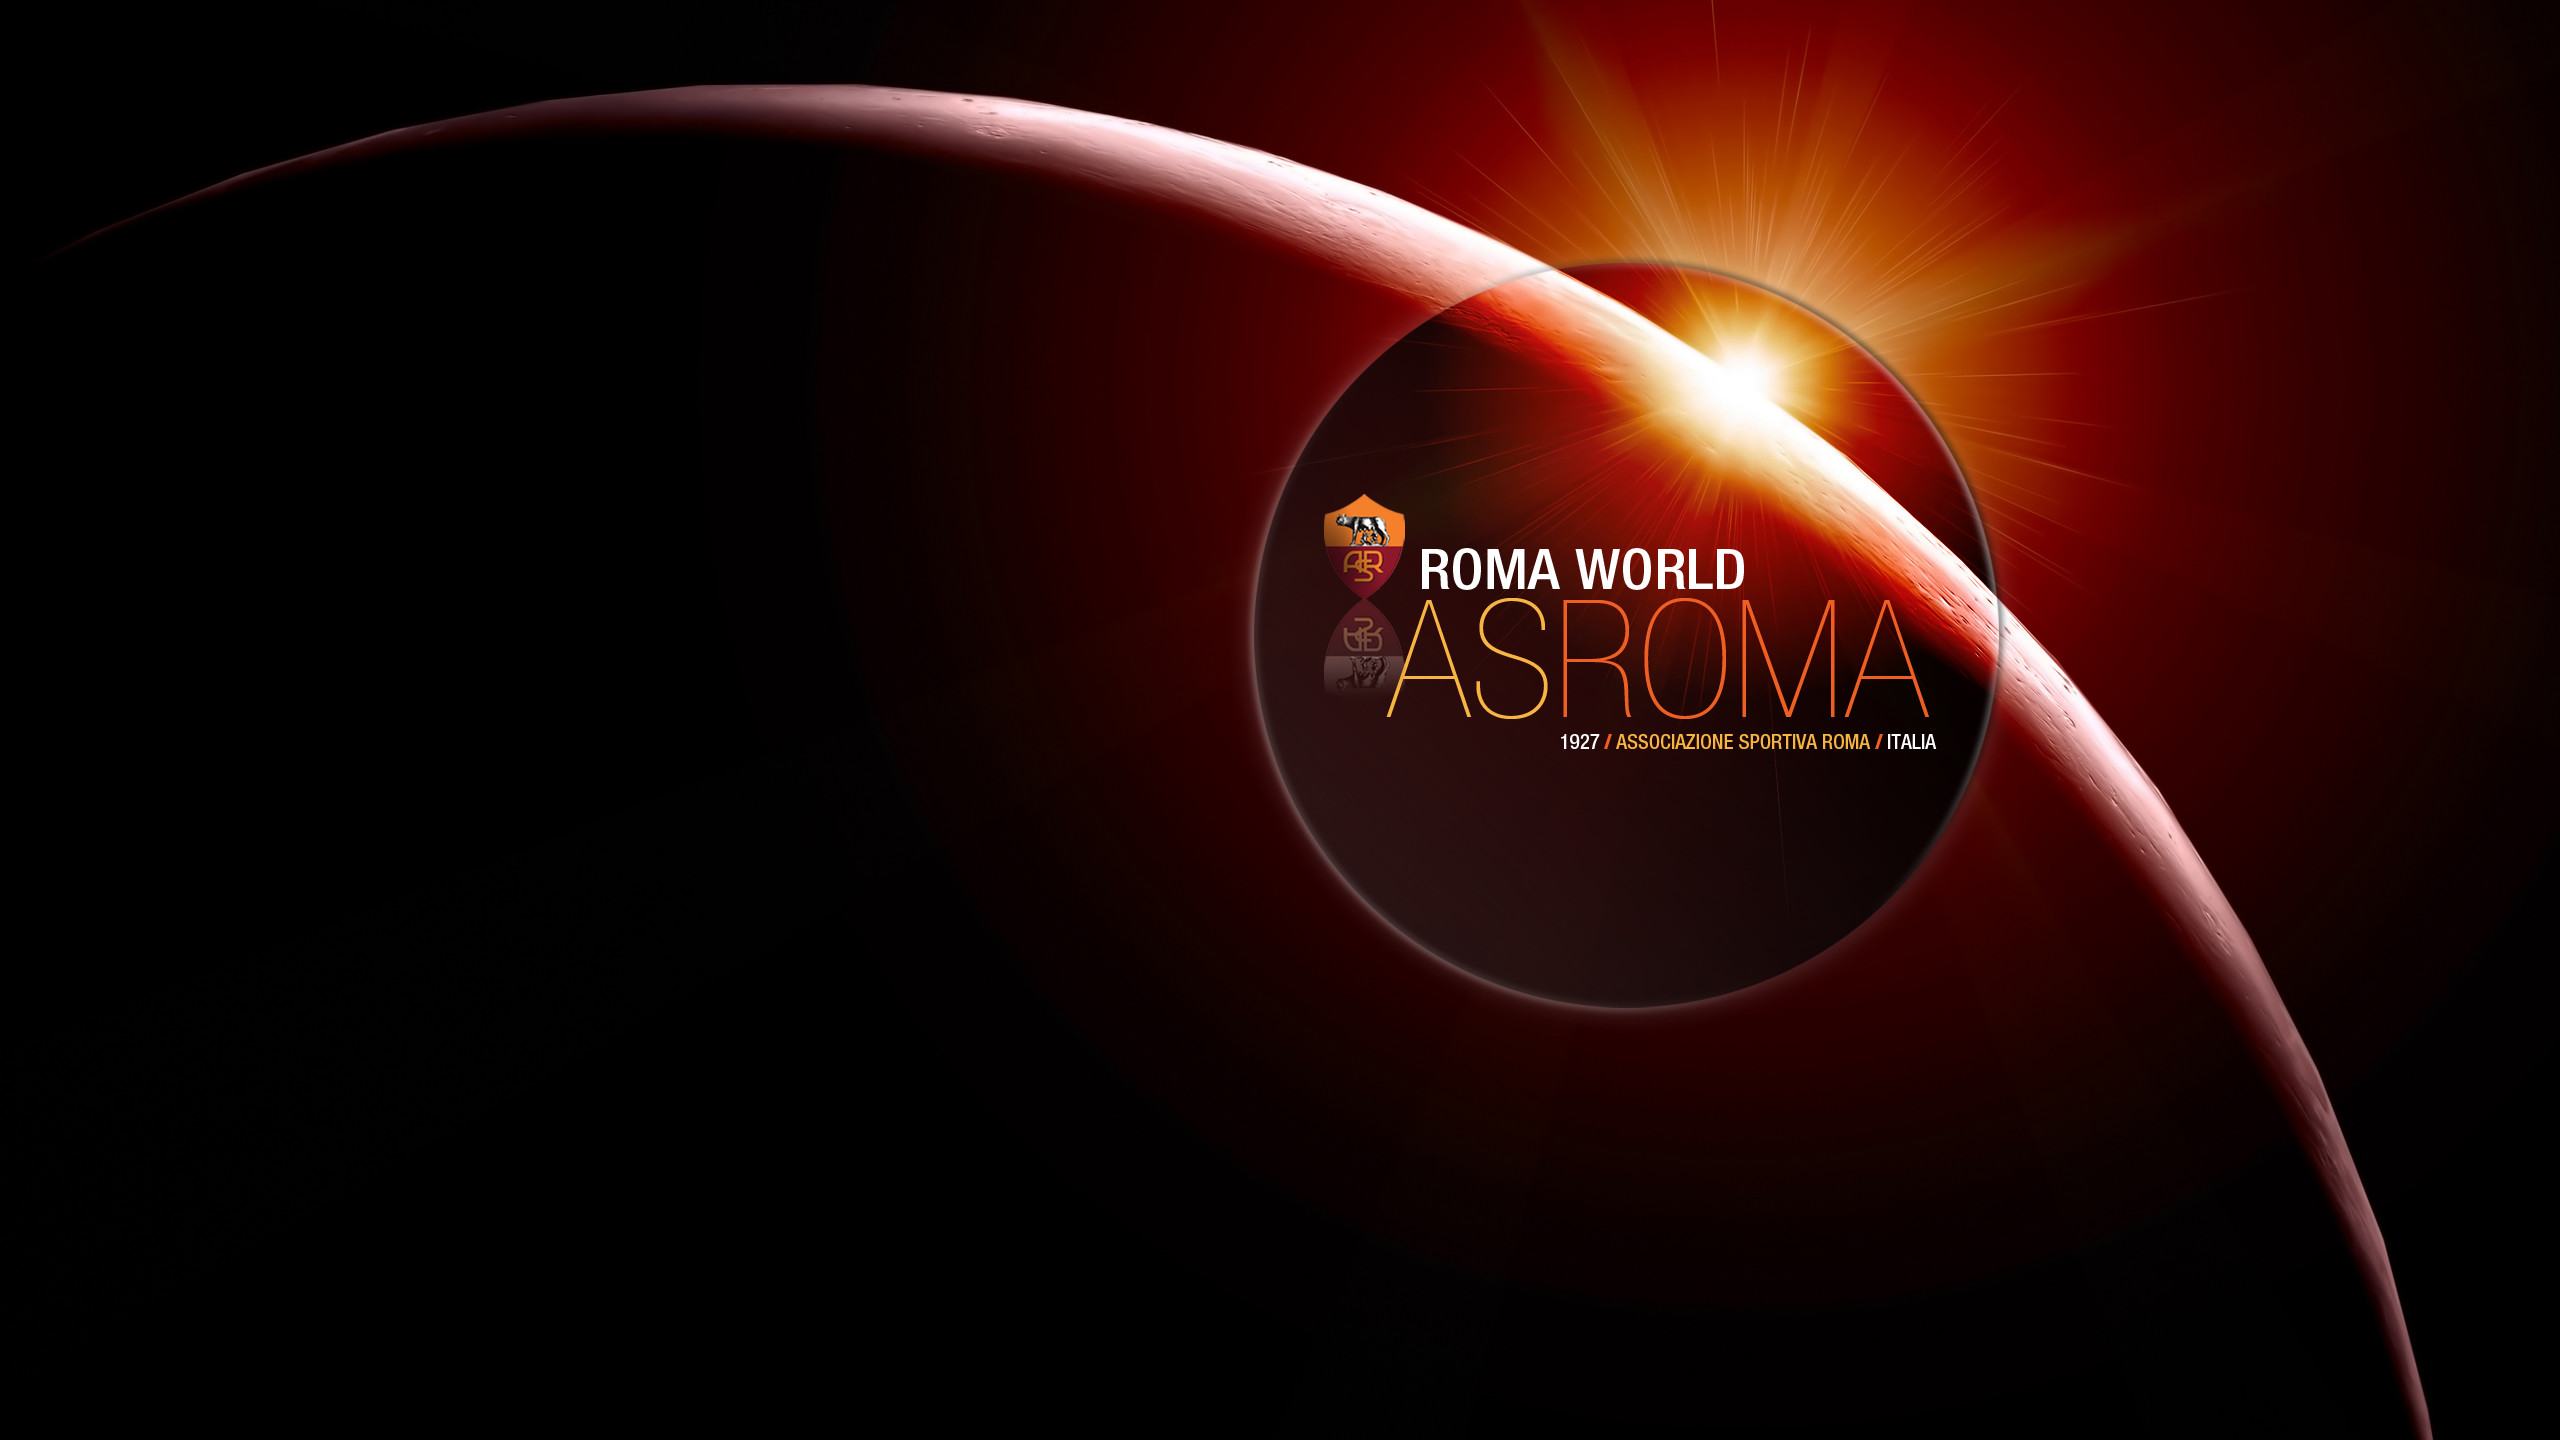 as roma wallpapers ·①